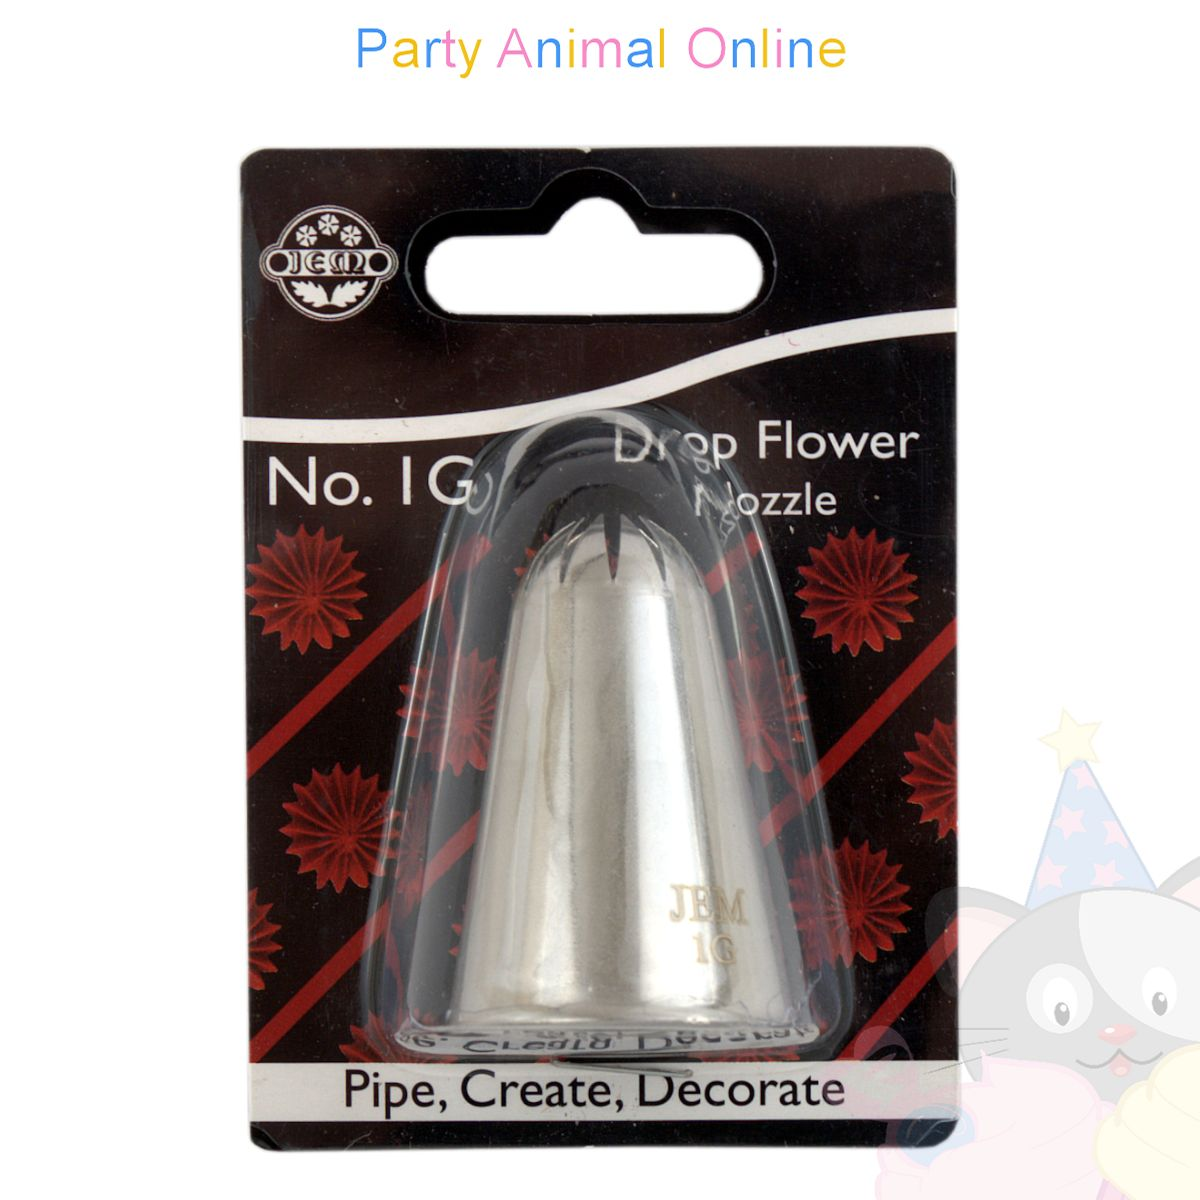 JEM Nozzle 1G - Drop Flower Piping Tube